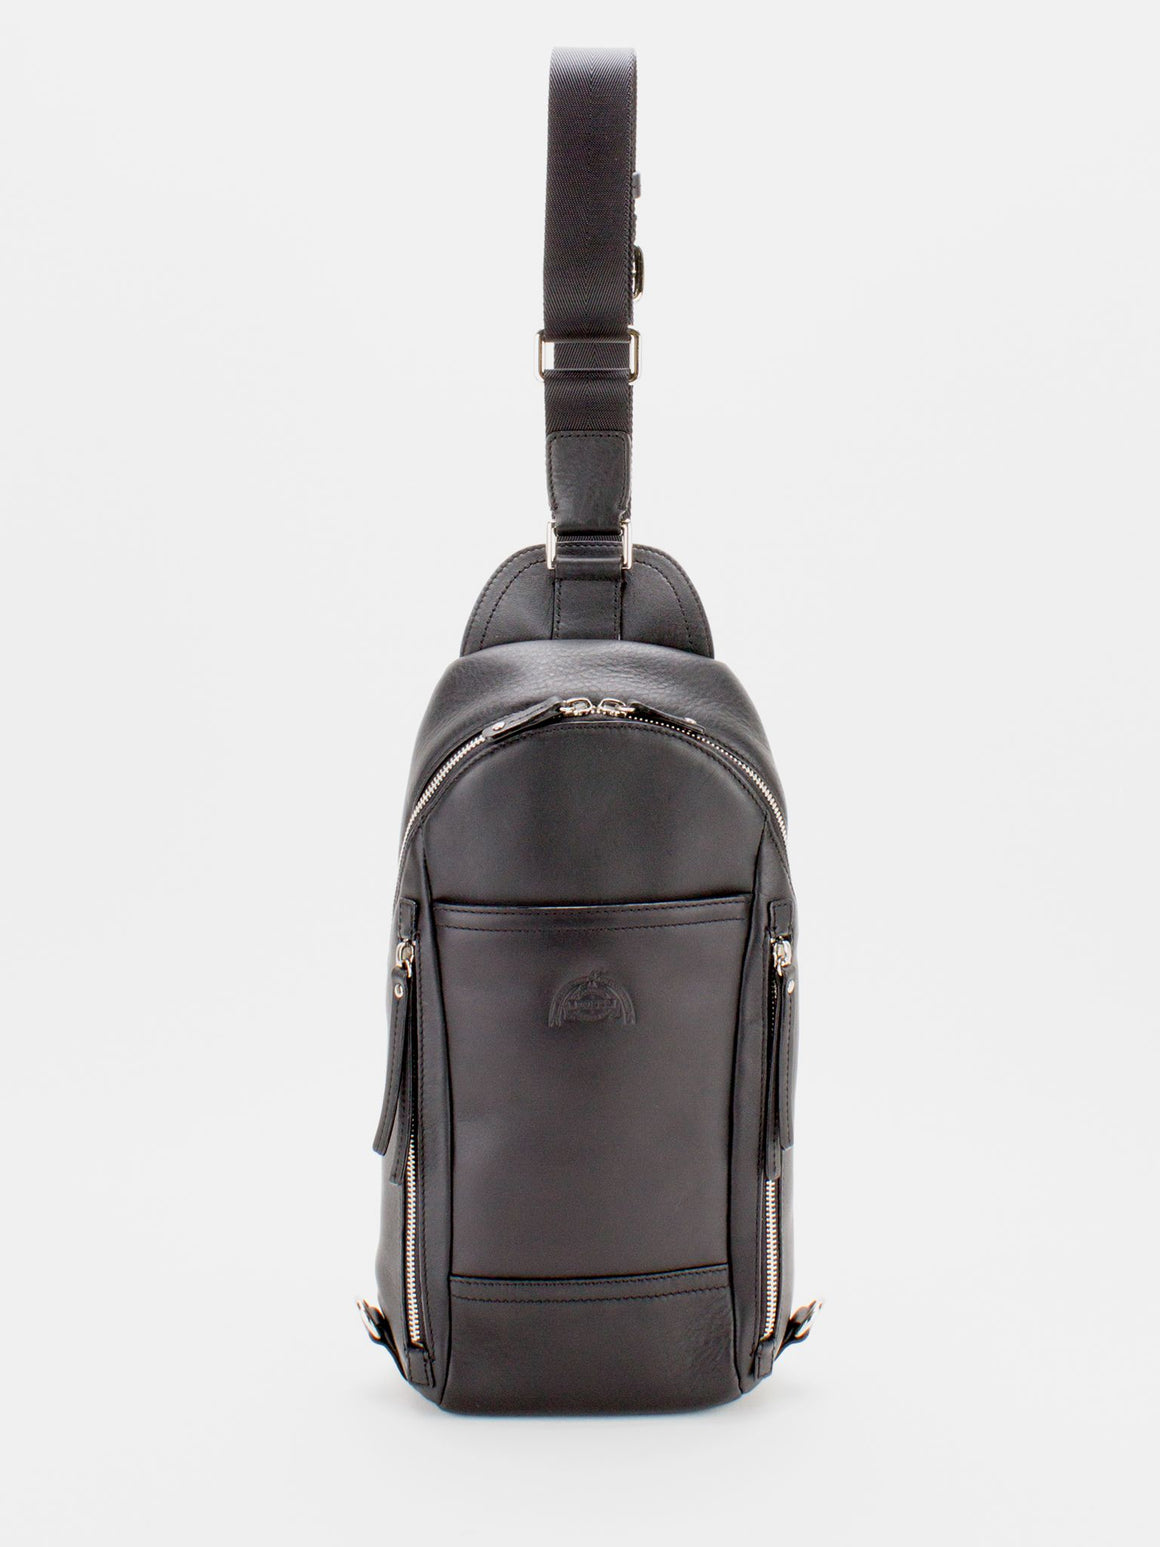 Colin Leather Sling Pack - Black